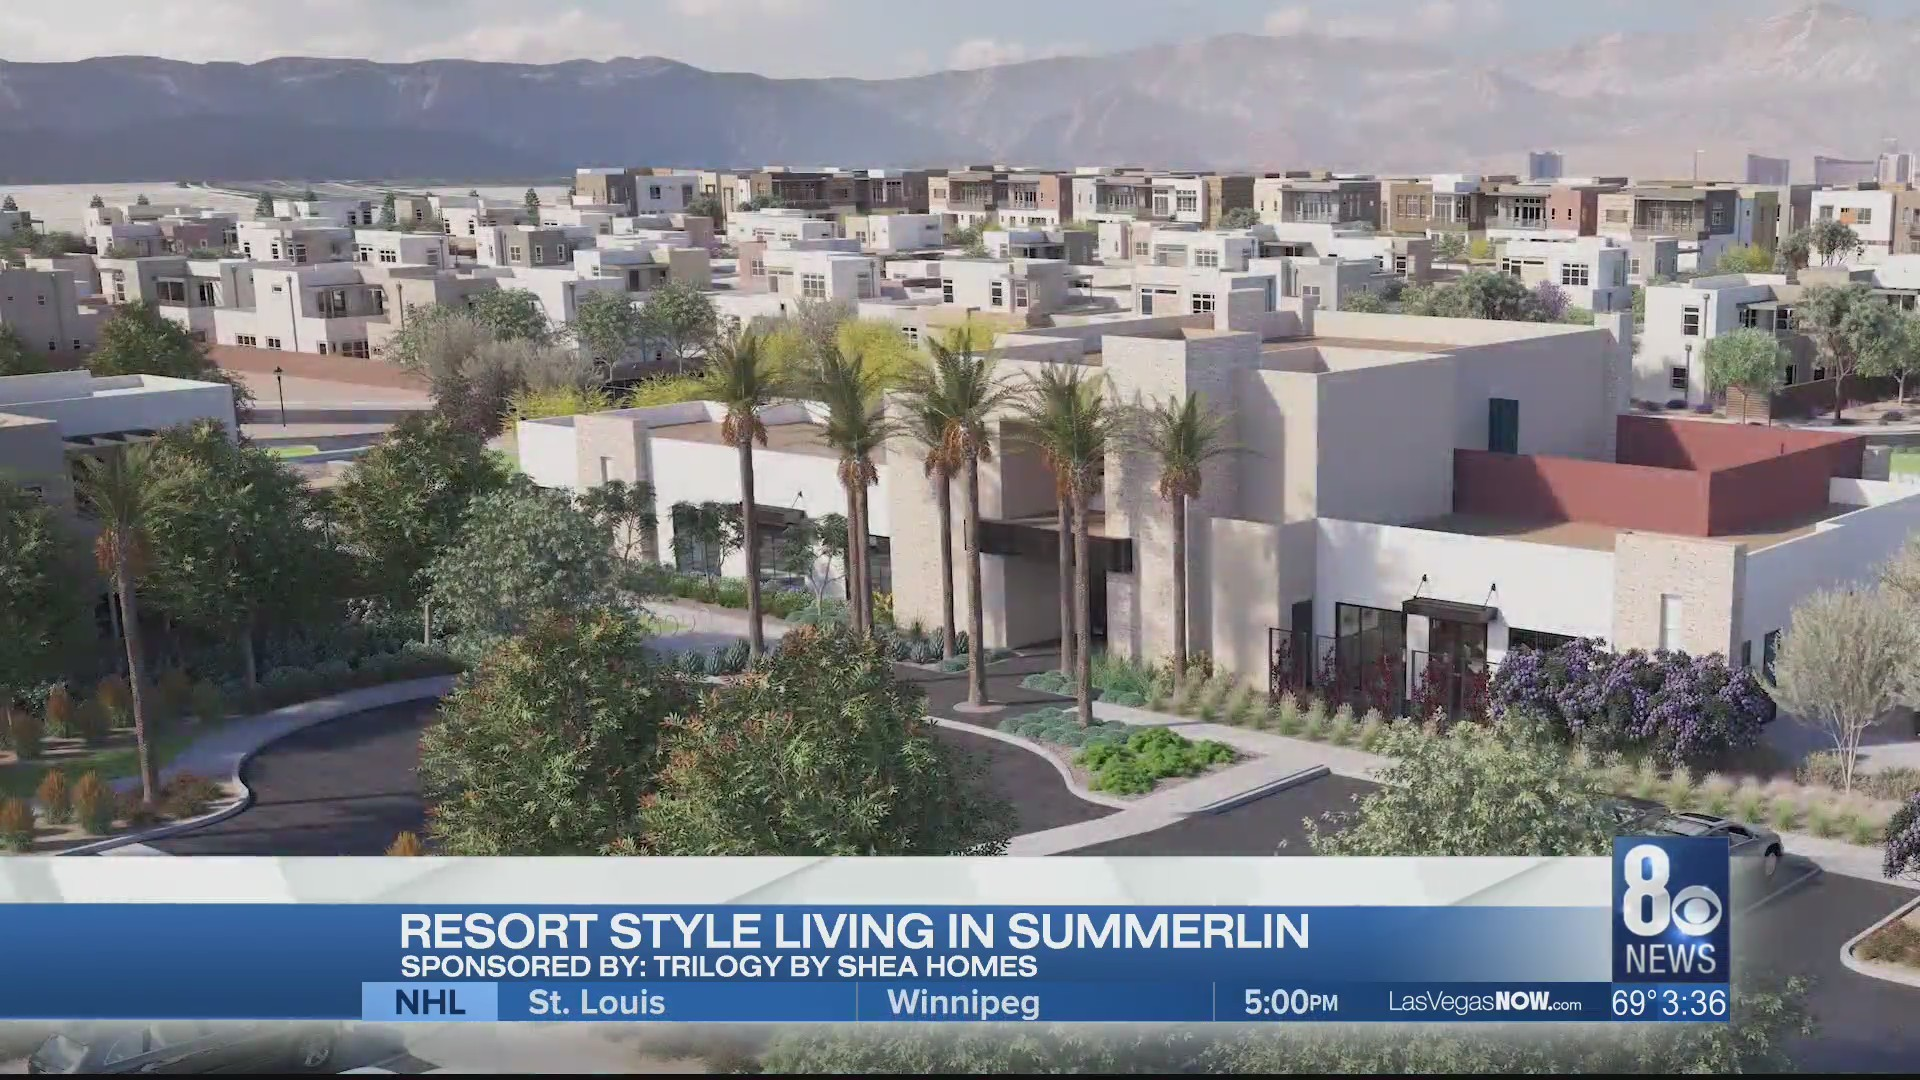 It's the perfect time to checkout Trilogy By Shea Homes in Summerlin